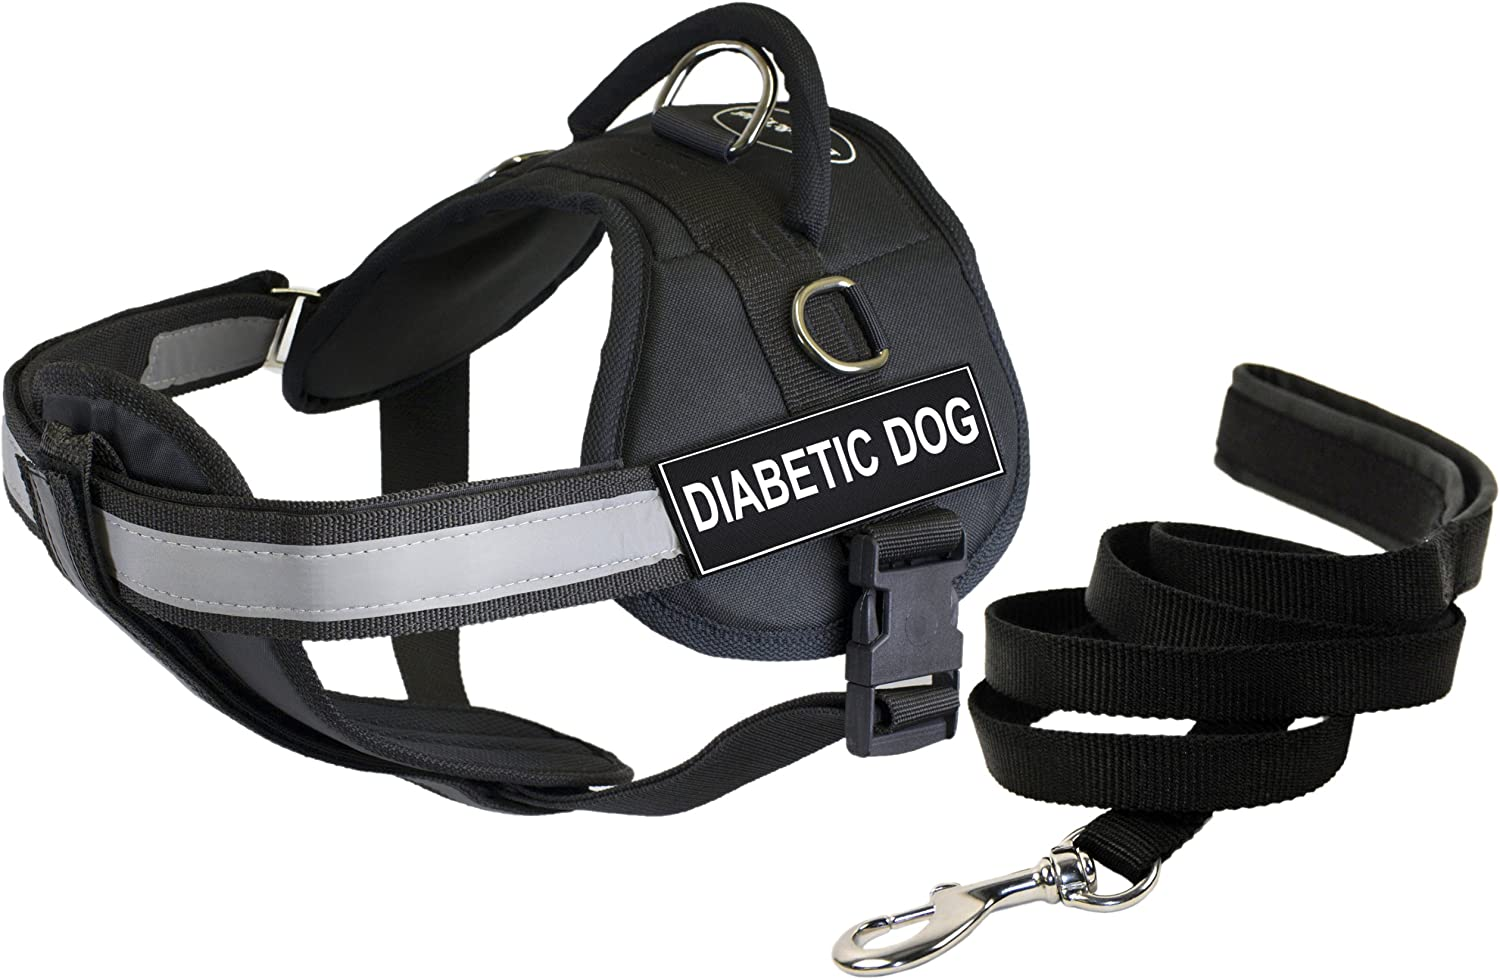 Dean & Tyler 21 by 26Inch Diabetic Dog Harness with Padded Puppy Leash, XSmall